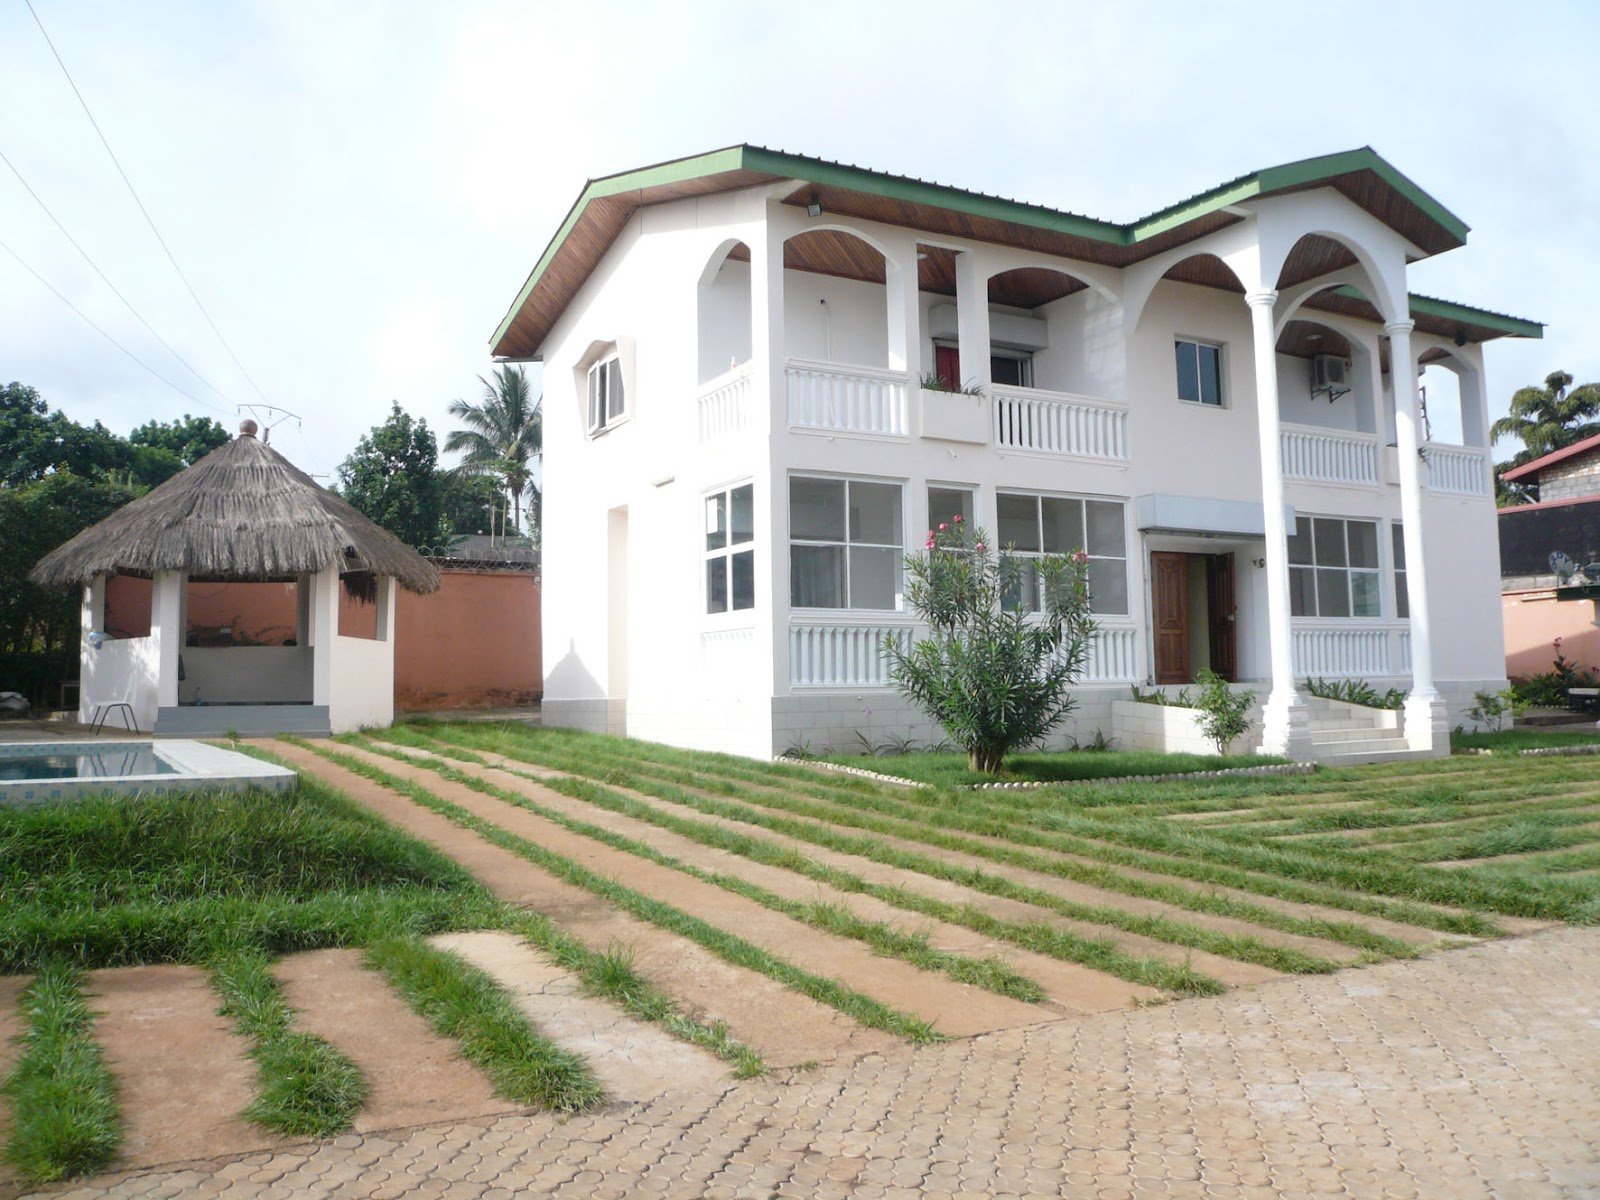 Agences immobilieres yaounde cameroun